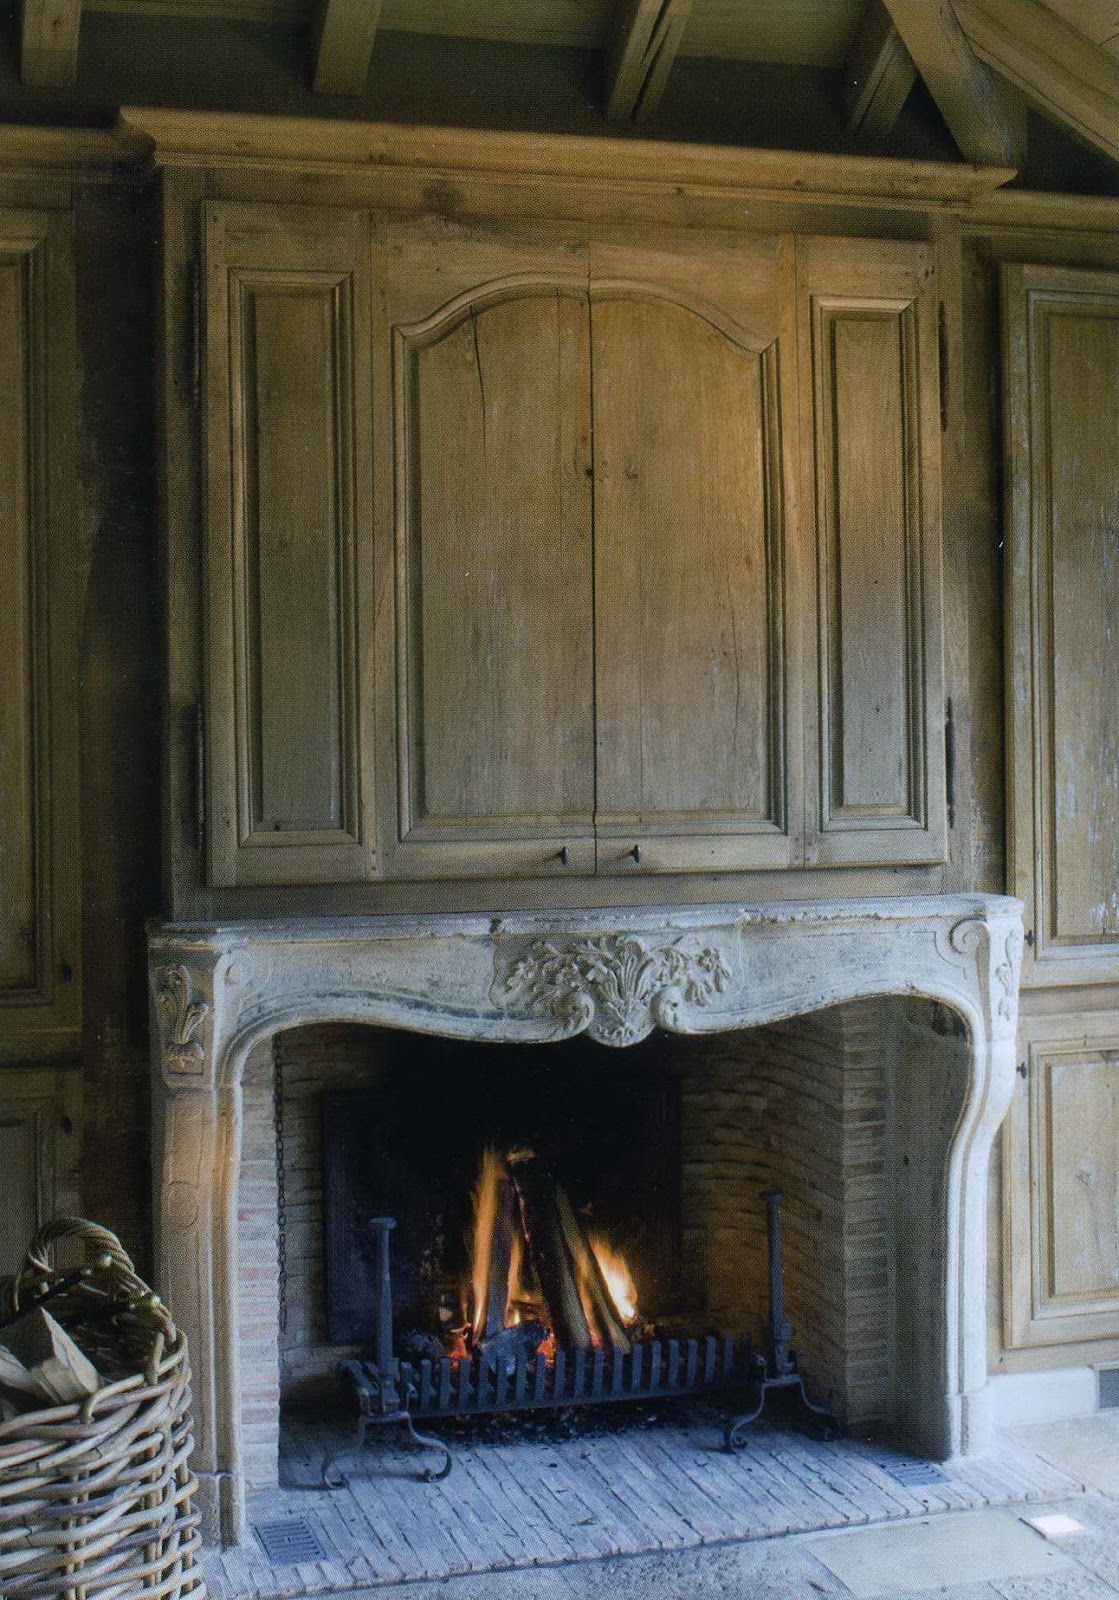 Over The Fireplace Tv Cabinet Custom Built In Tv Cabinetry Above Fireplace To Hide The Flat